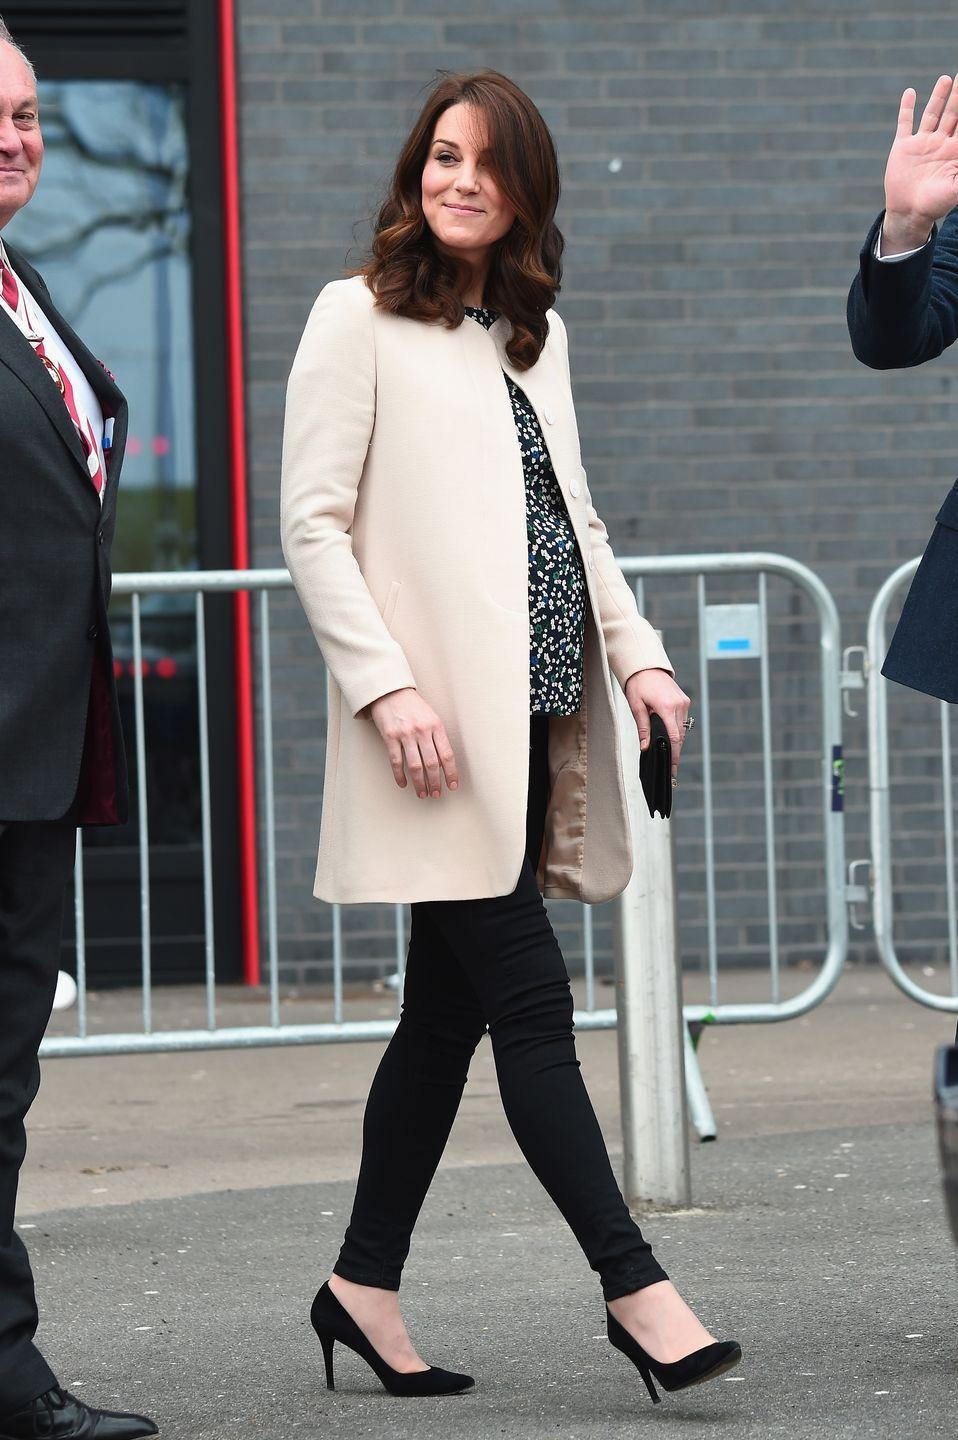 """<p>The Queen was reportedly very upset with the Duke and Duchess of Cambridge when she found out Kate wanted to keep her <a href=""""http://www.marieclaire.co.uk/entertainment/people/queen-prince-william-argument-546822"""" rel=""""nofollow noopener"""" target=""""_blank"""" data-ylk=""""slk:public appearances"""" class=""""link rapid-noclick-resp"""">public appearances</a> """"to a minimum"""" during her third pregnancy—understandable, since she's prone to <a href=""""https://www.marieclaire.com/celebrity/a12813676/kate-middleton-first-public-appearance-since-third-baby-announcement/"""" rel=""""nofollow noopener"""" target=""""_blank"""" data-ylk=""""slk:severe morning sickness"""" class=""""link rapid-noclick-resp"""">severe morning sickness</a>. Nevertheless, Her Majesty thought the future <a href=""""https://www.marieclaire.com/culture/g15950054/british-royal-terms-phrases-glossary/?slide=3"""" rel=""""nofollow noopener"""" target=""""_blank"""" data-ylk=""""slk:Queen consort"""" class=""""link rapid-noclick-resp"""">Queen consort</a> shouldn't skip out on her duties.</p>"""